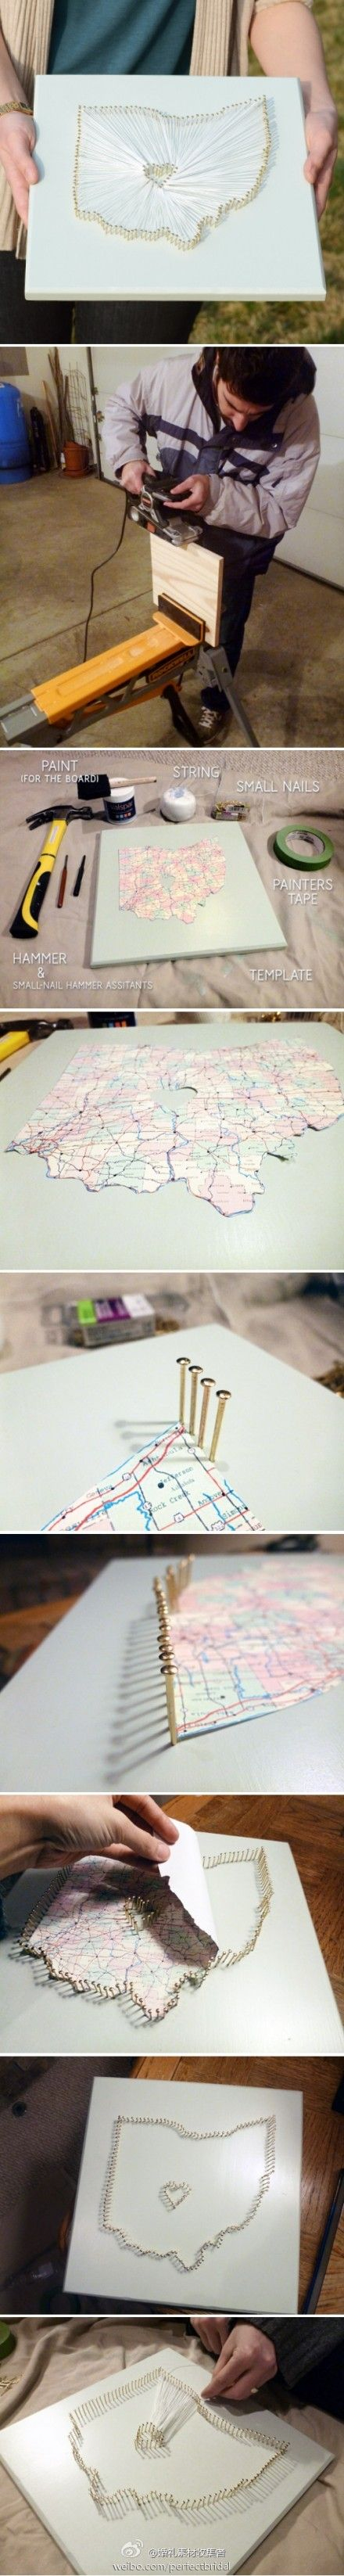 234 best DIY ideas with maps